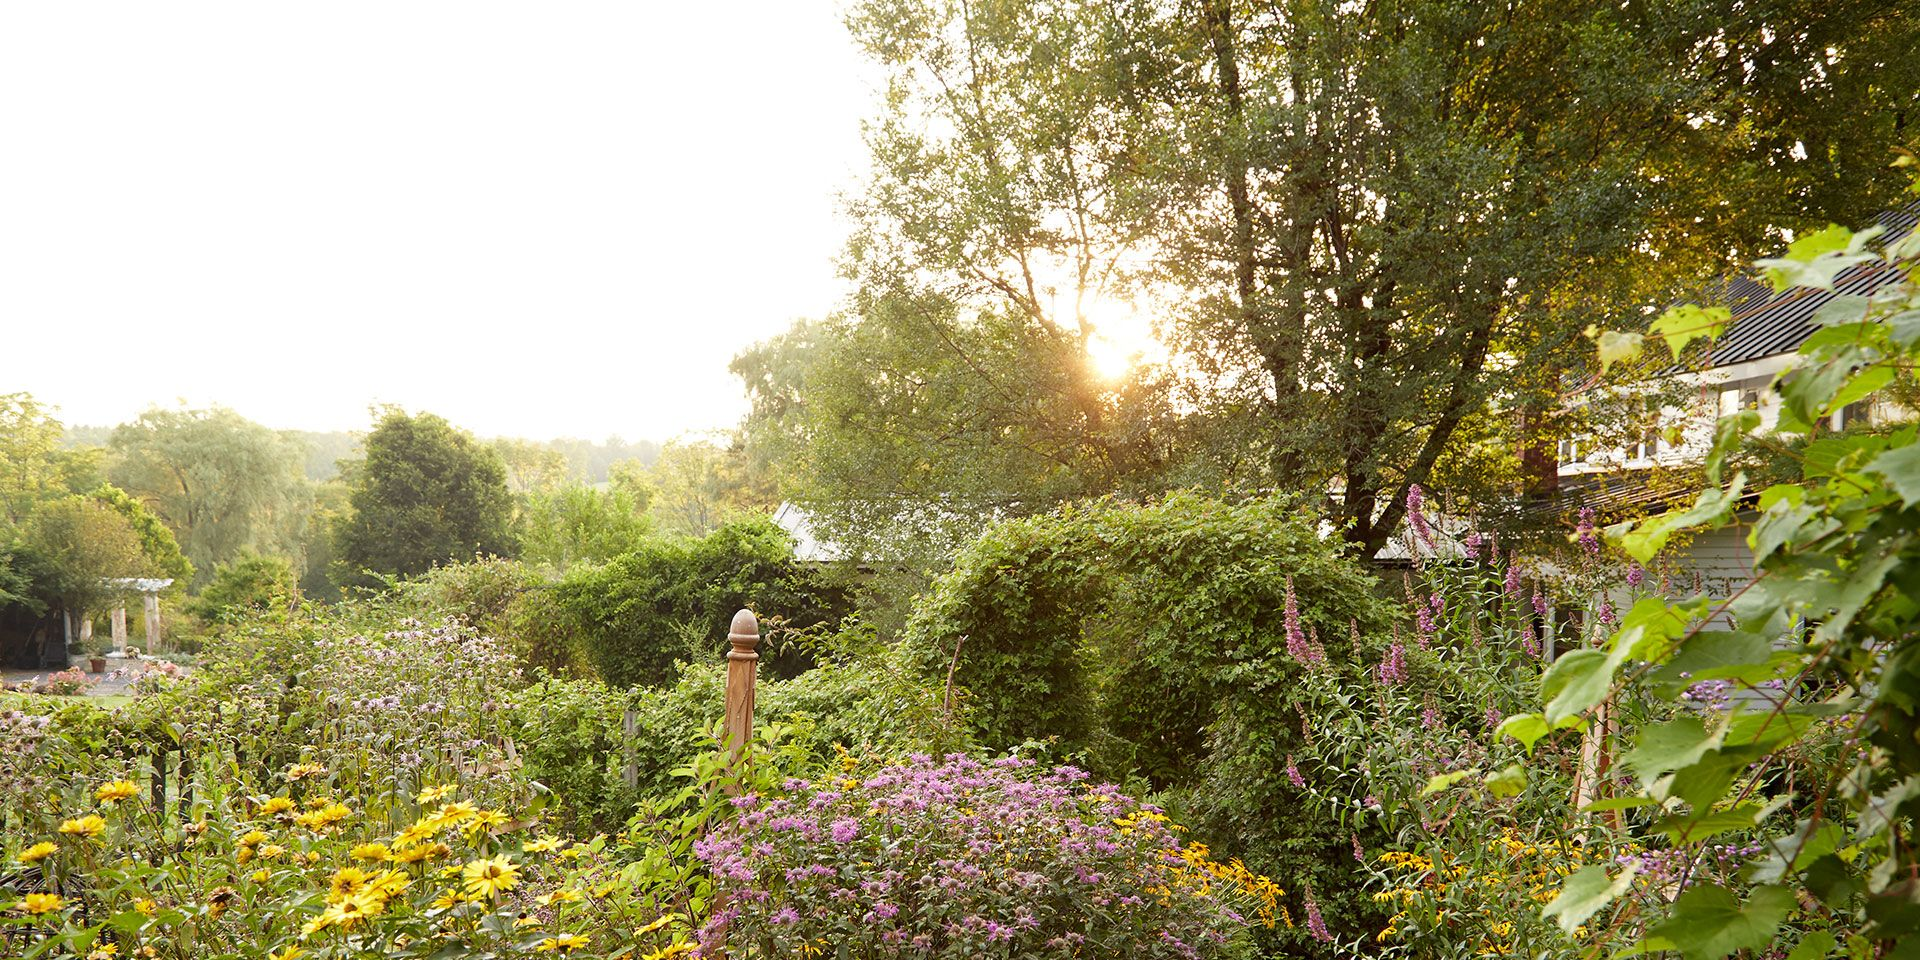 30 Beautiful Garden Pictures Images of Gorgeous Spring Gardens